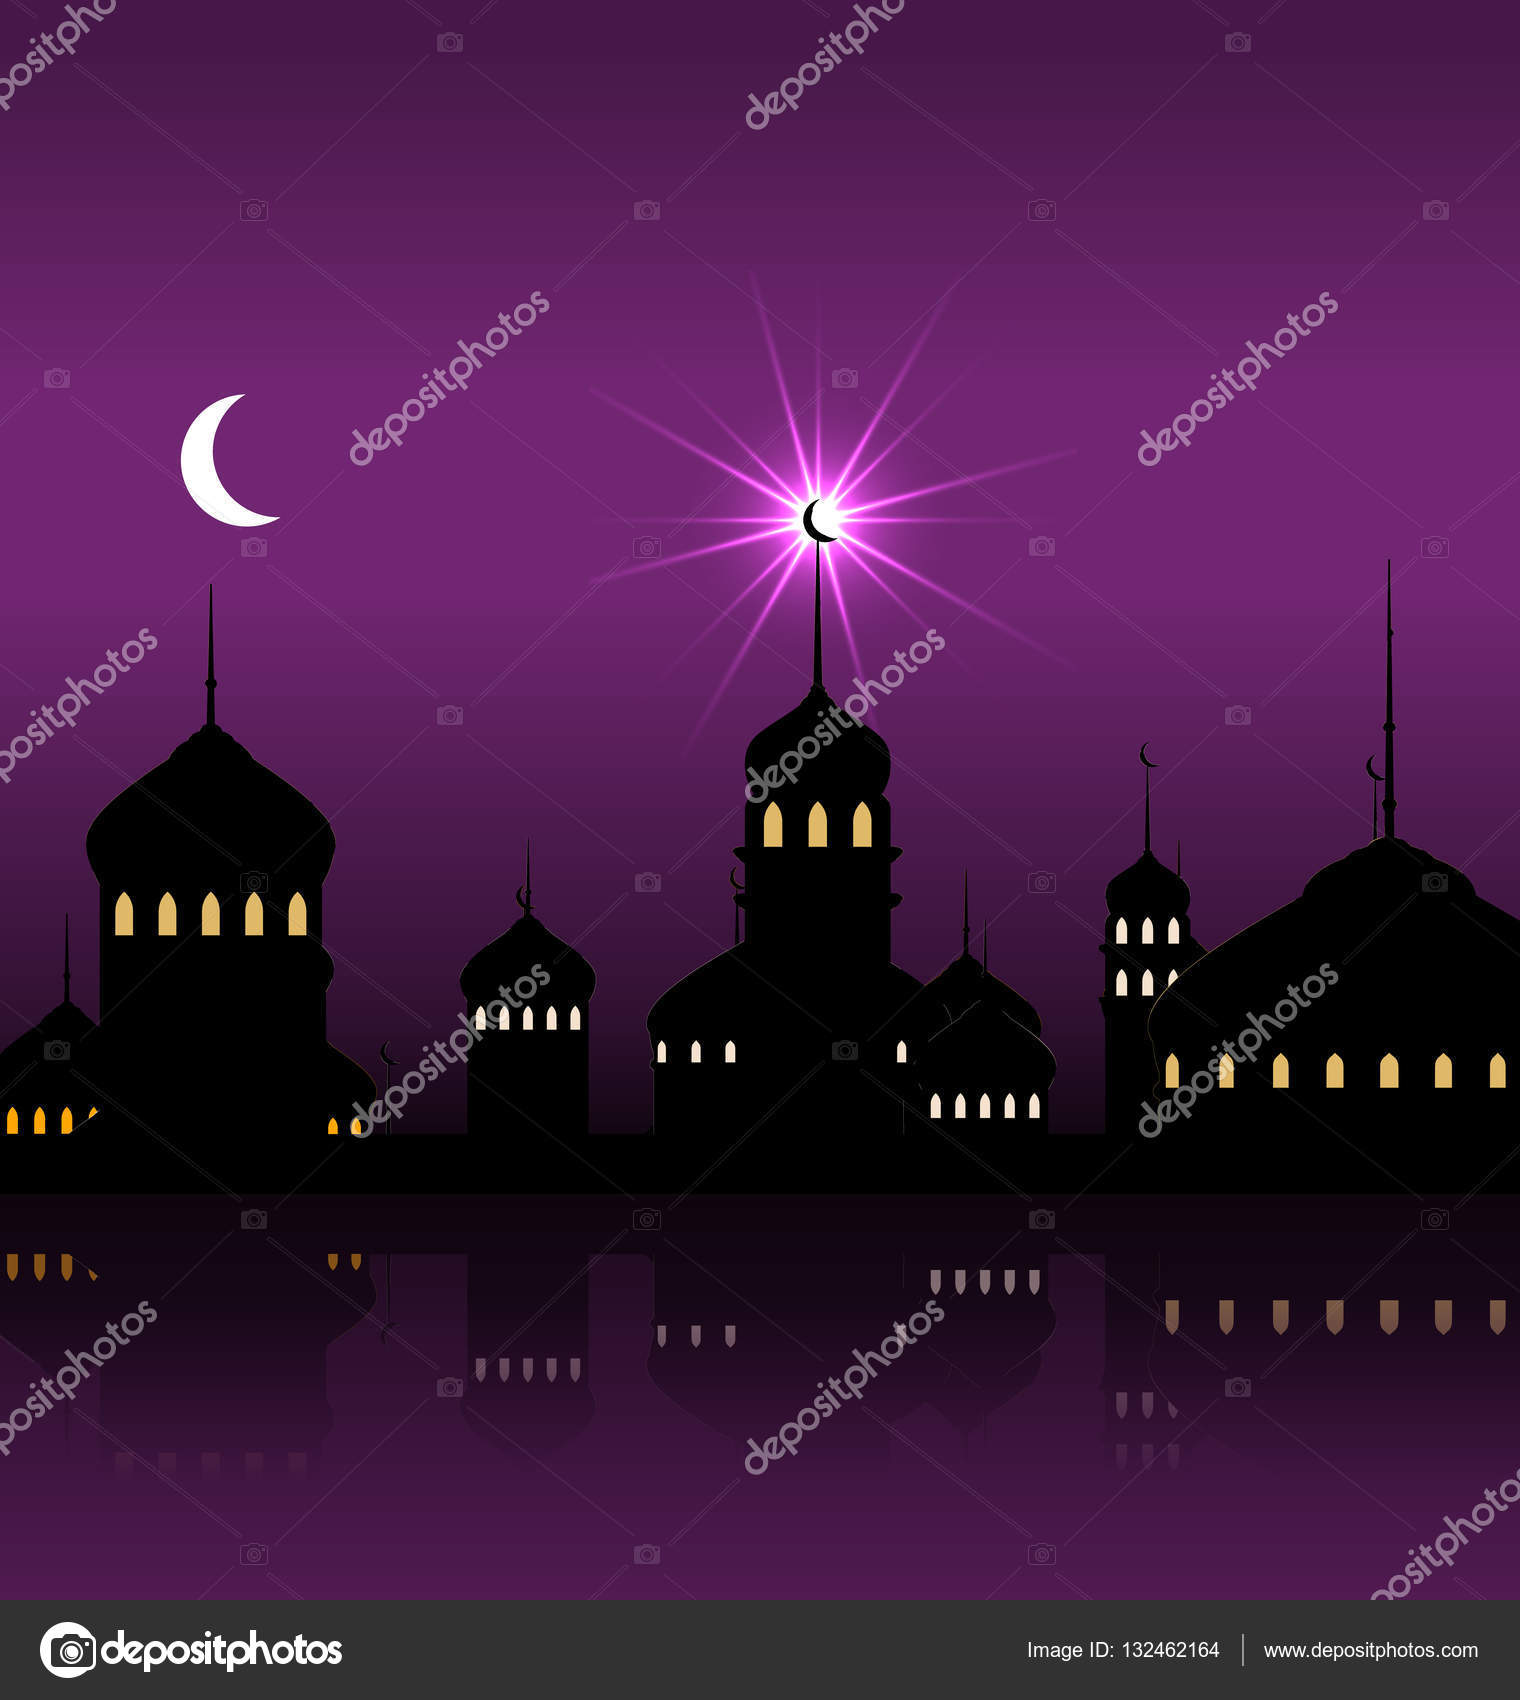 Mosque background for ramadan kareem stock photography image - Ramadan Kareem Night Background With Silhouette Mosque And Minarets Stock Photo 132462164